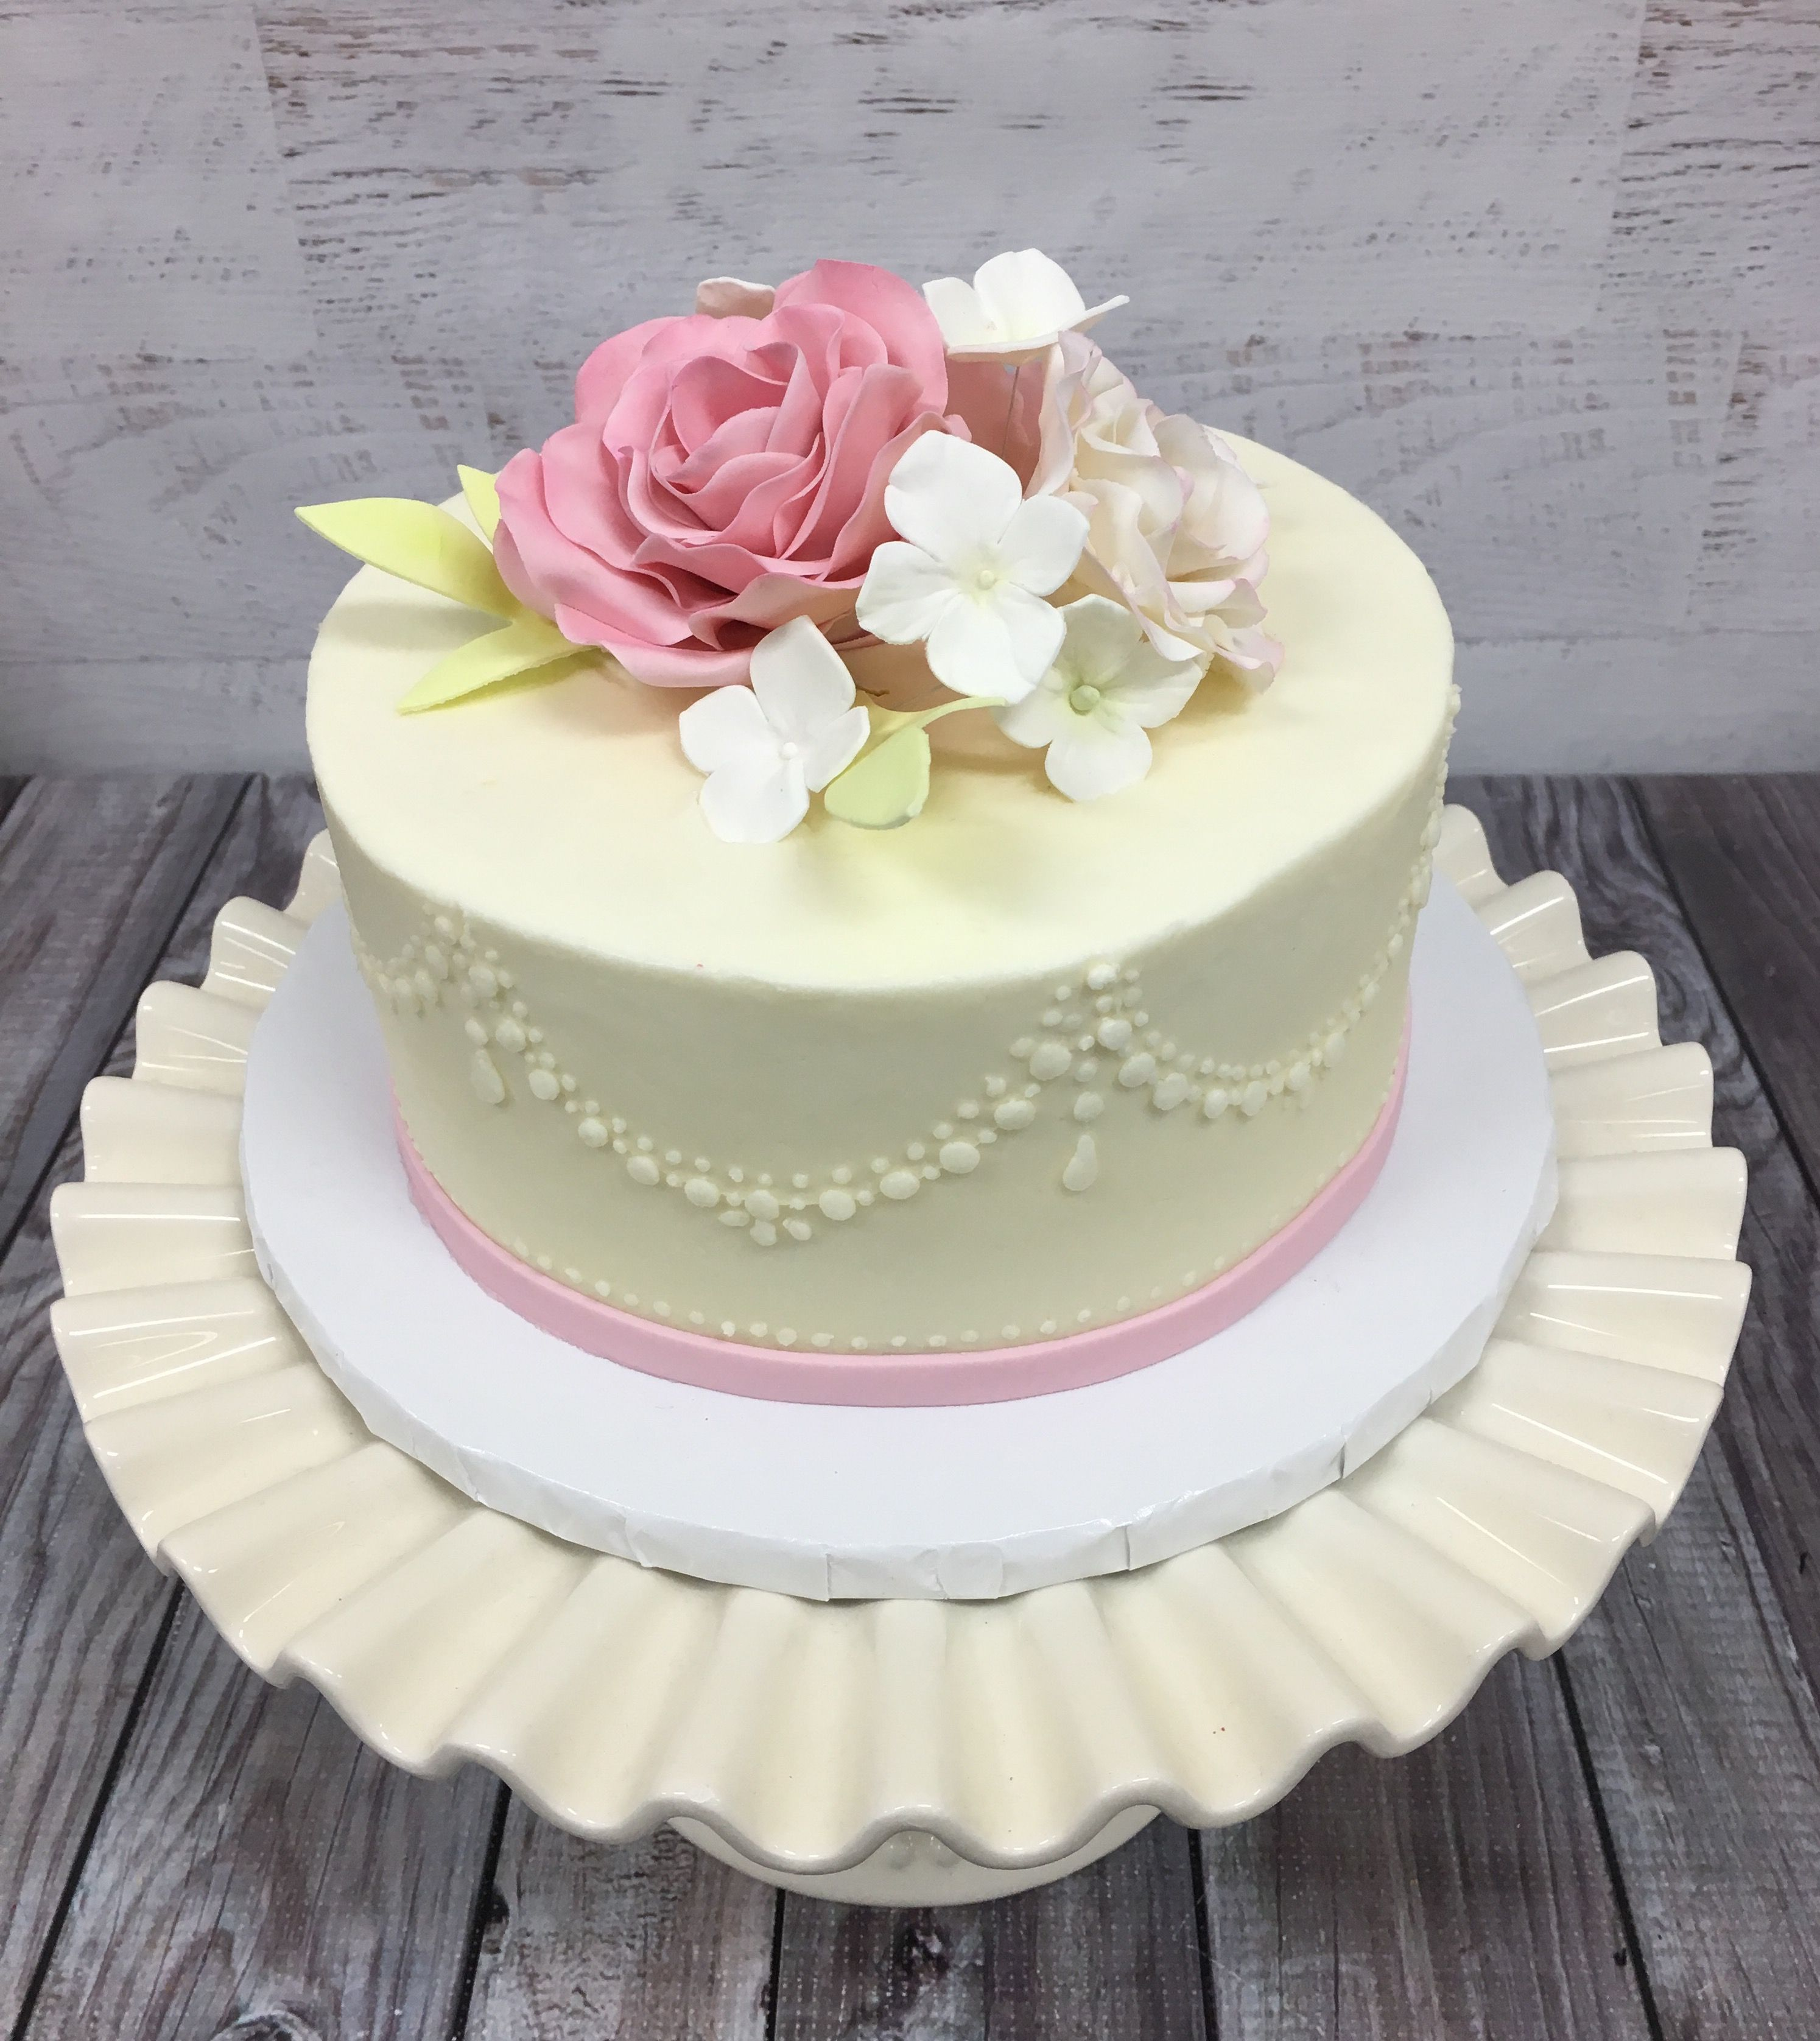 Cakes for her image by edible art cake shop cakes for